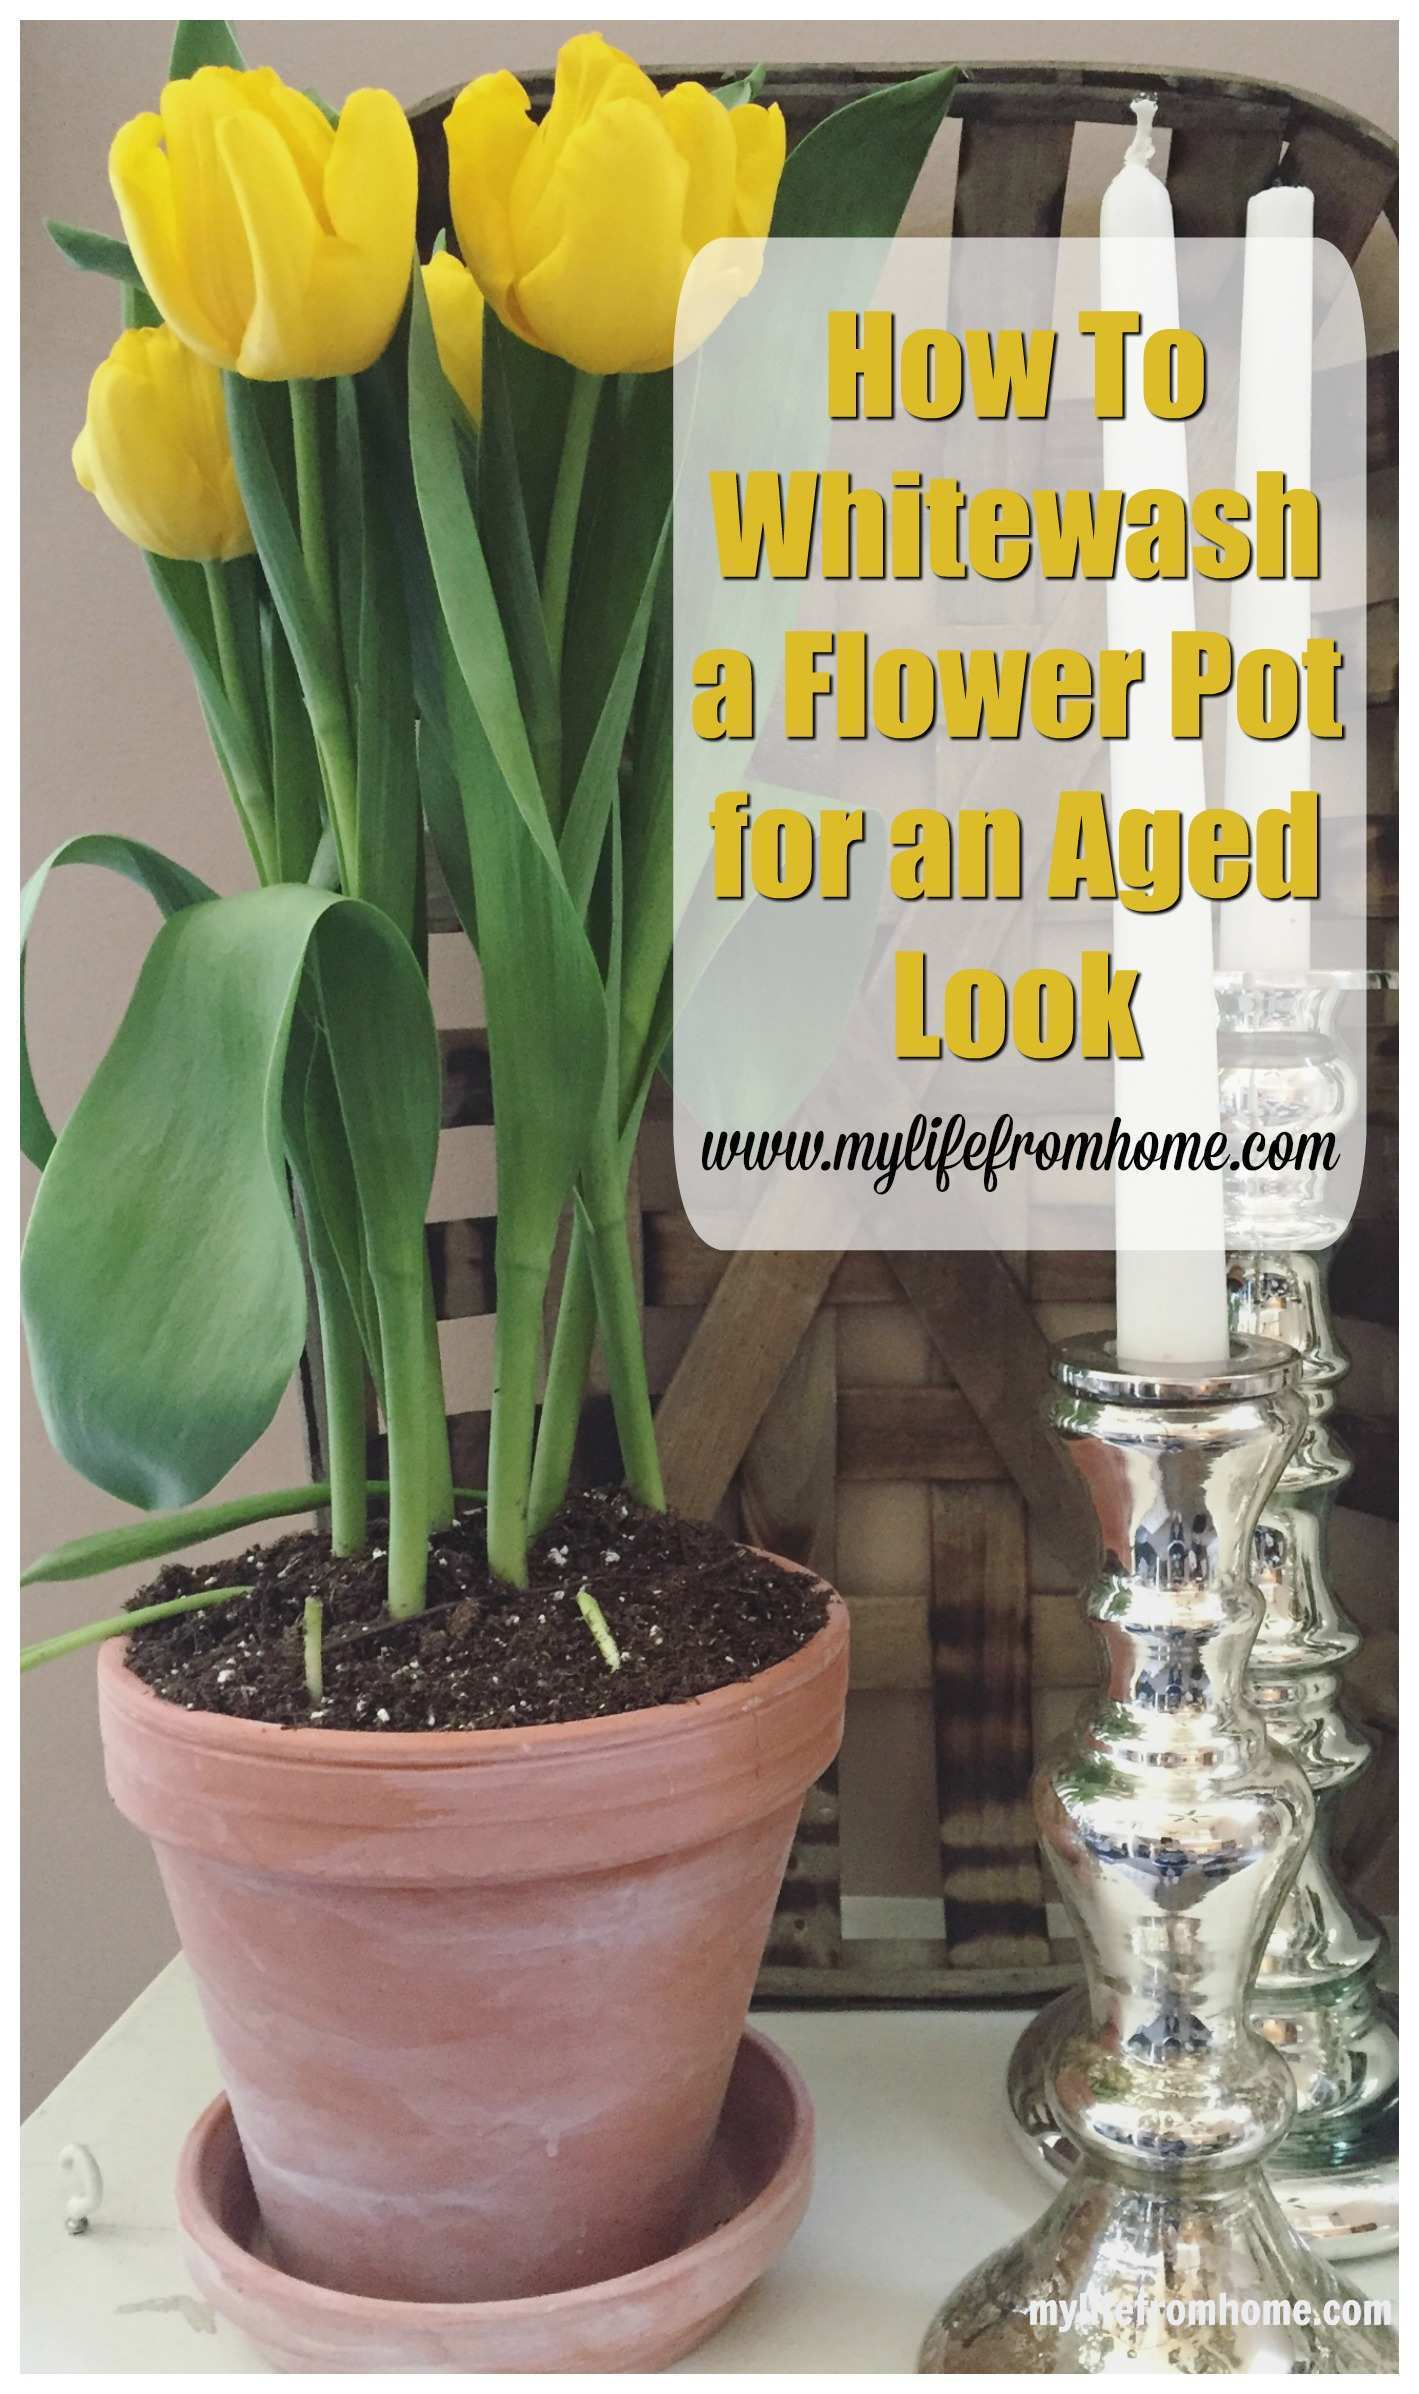 How to Whitewash a Flower Pot for an Aged Look by www.mylifefromhome.com